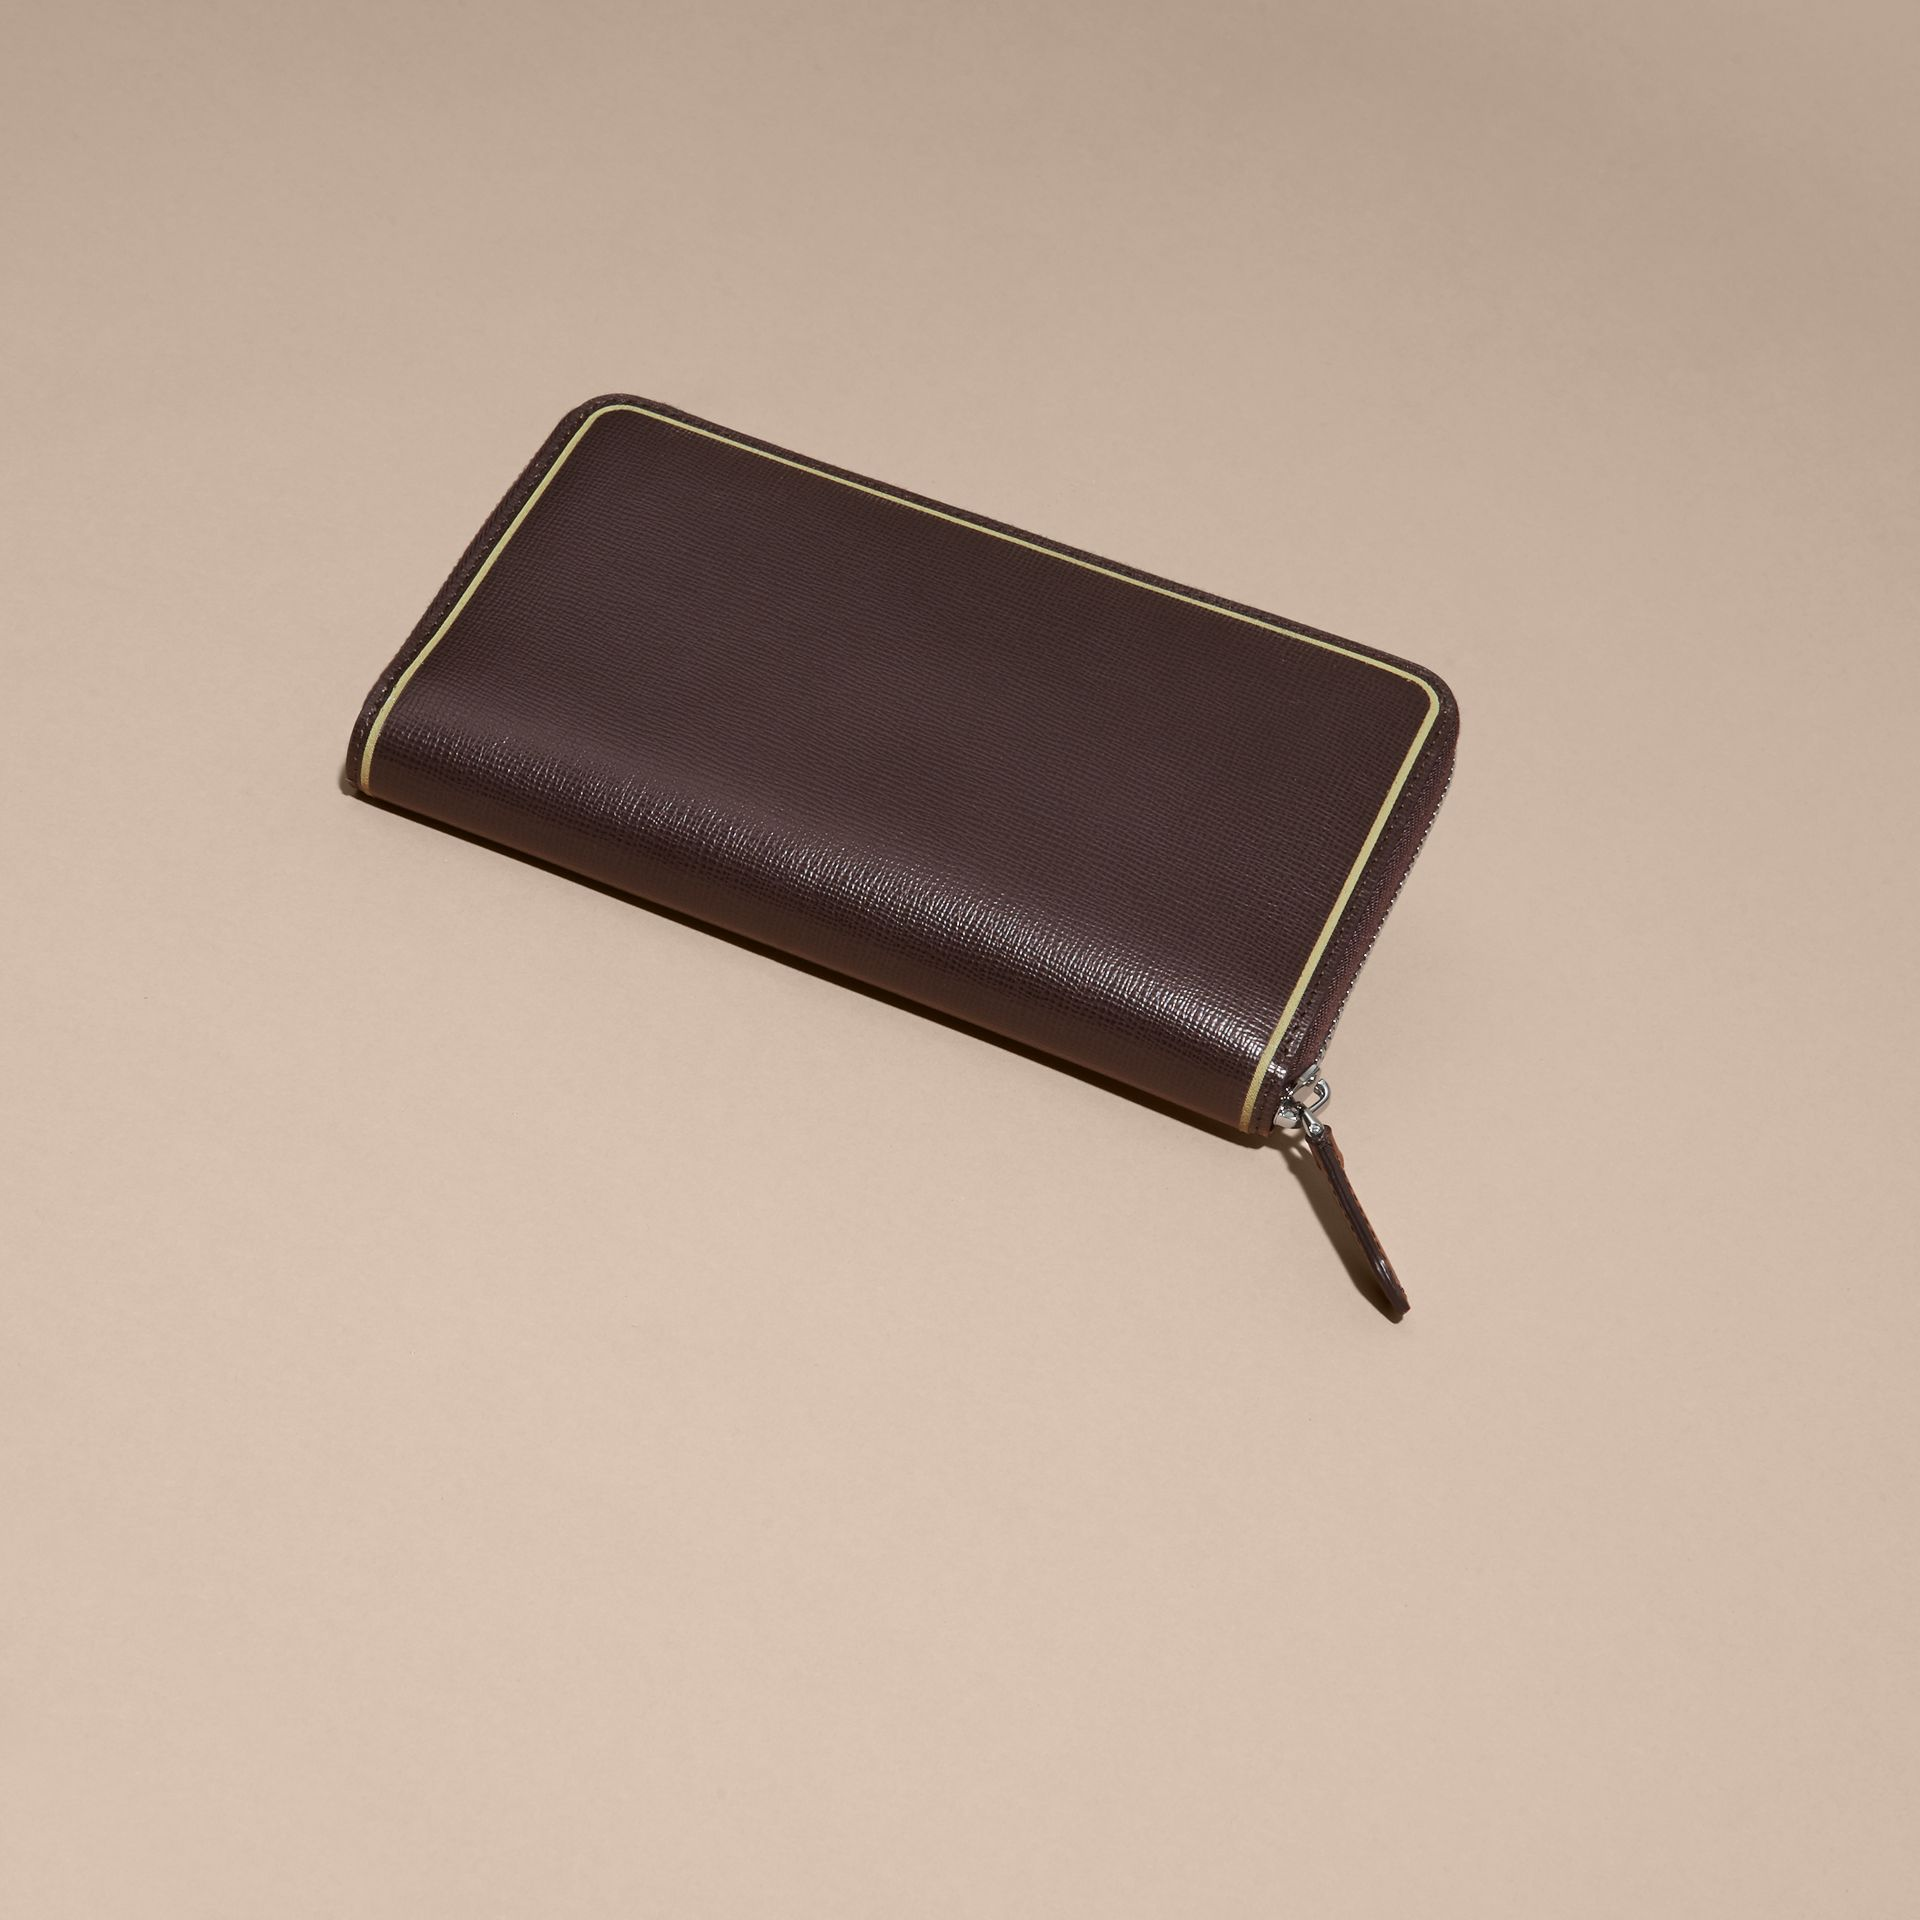 Border Detail London Leather Ziparound Wallet Peppercorn - gallery image 3